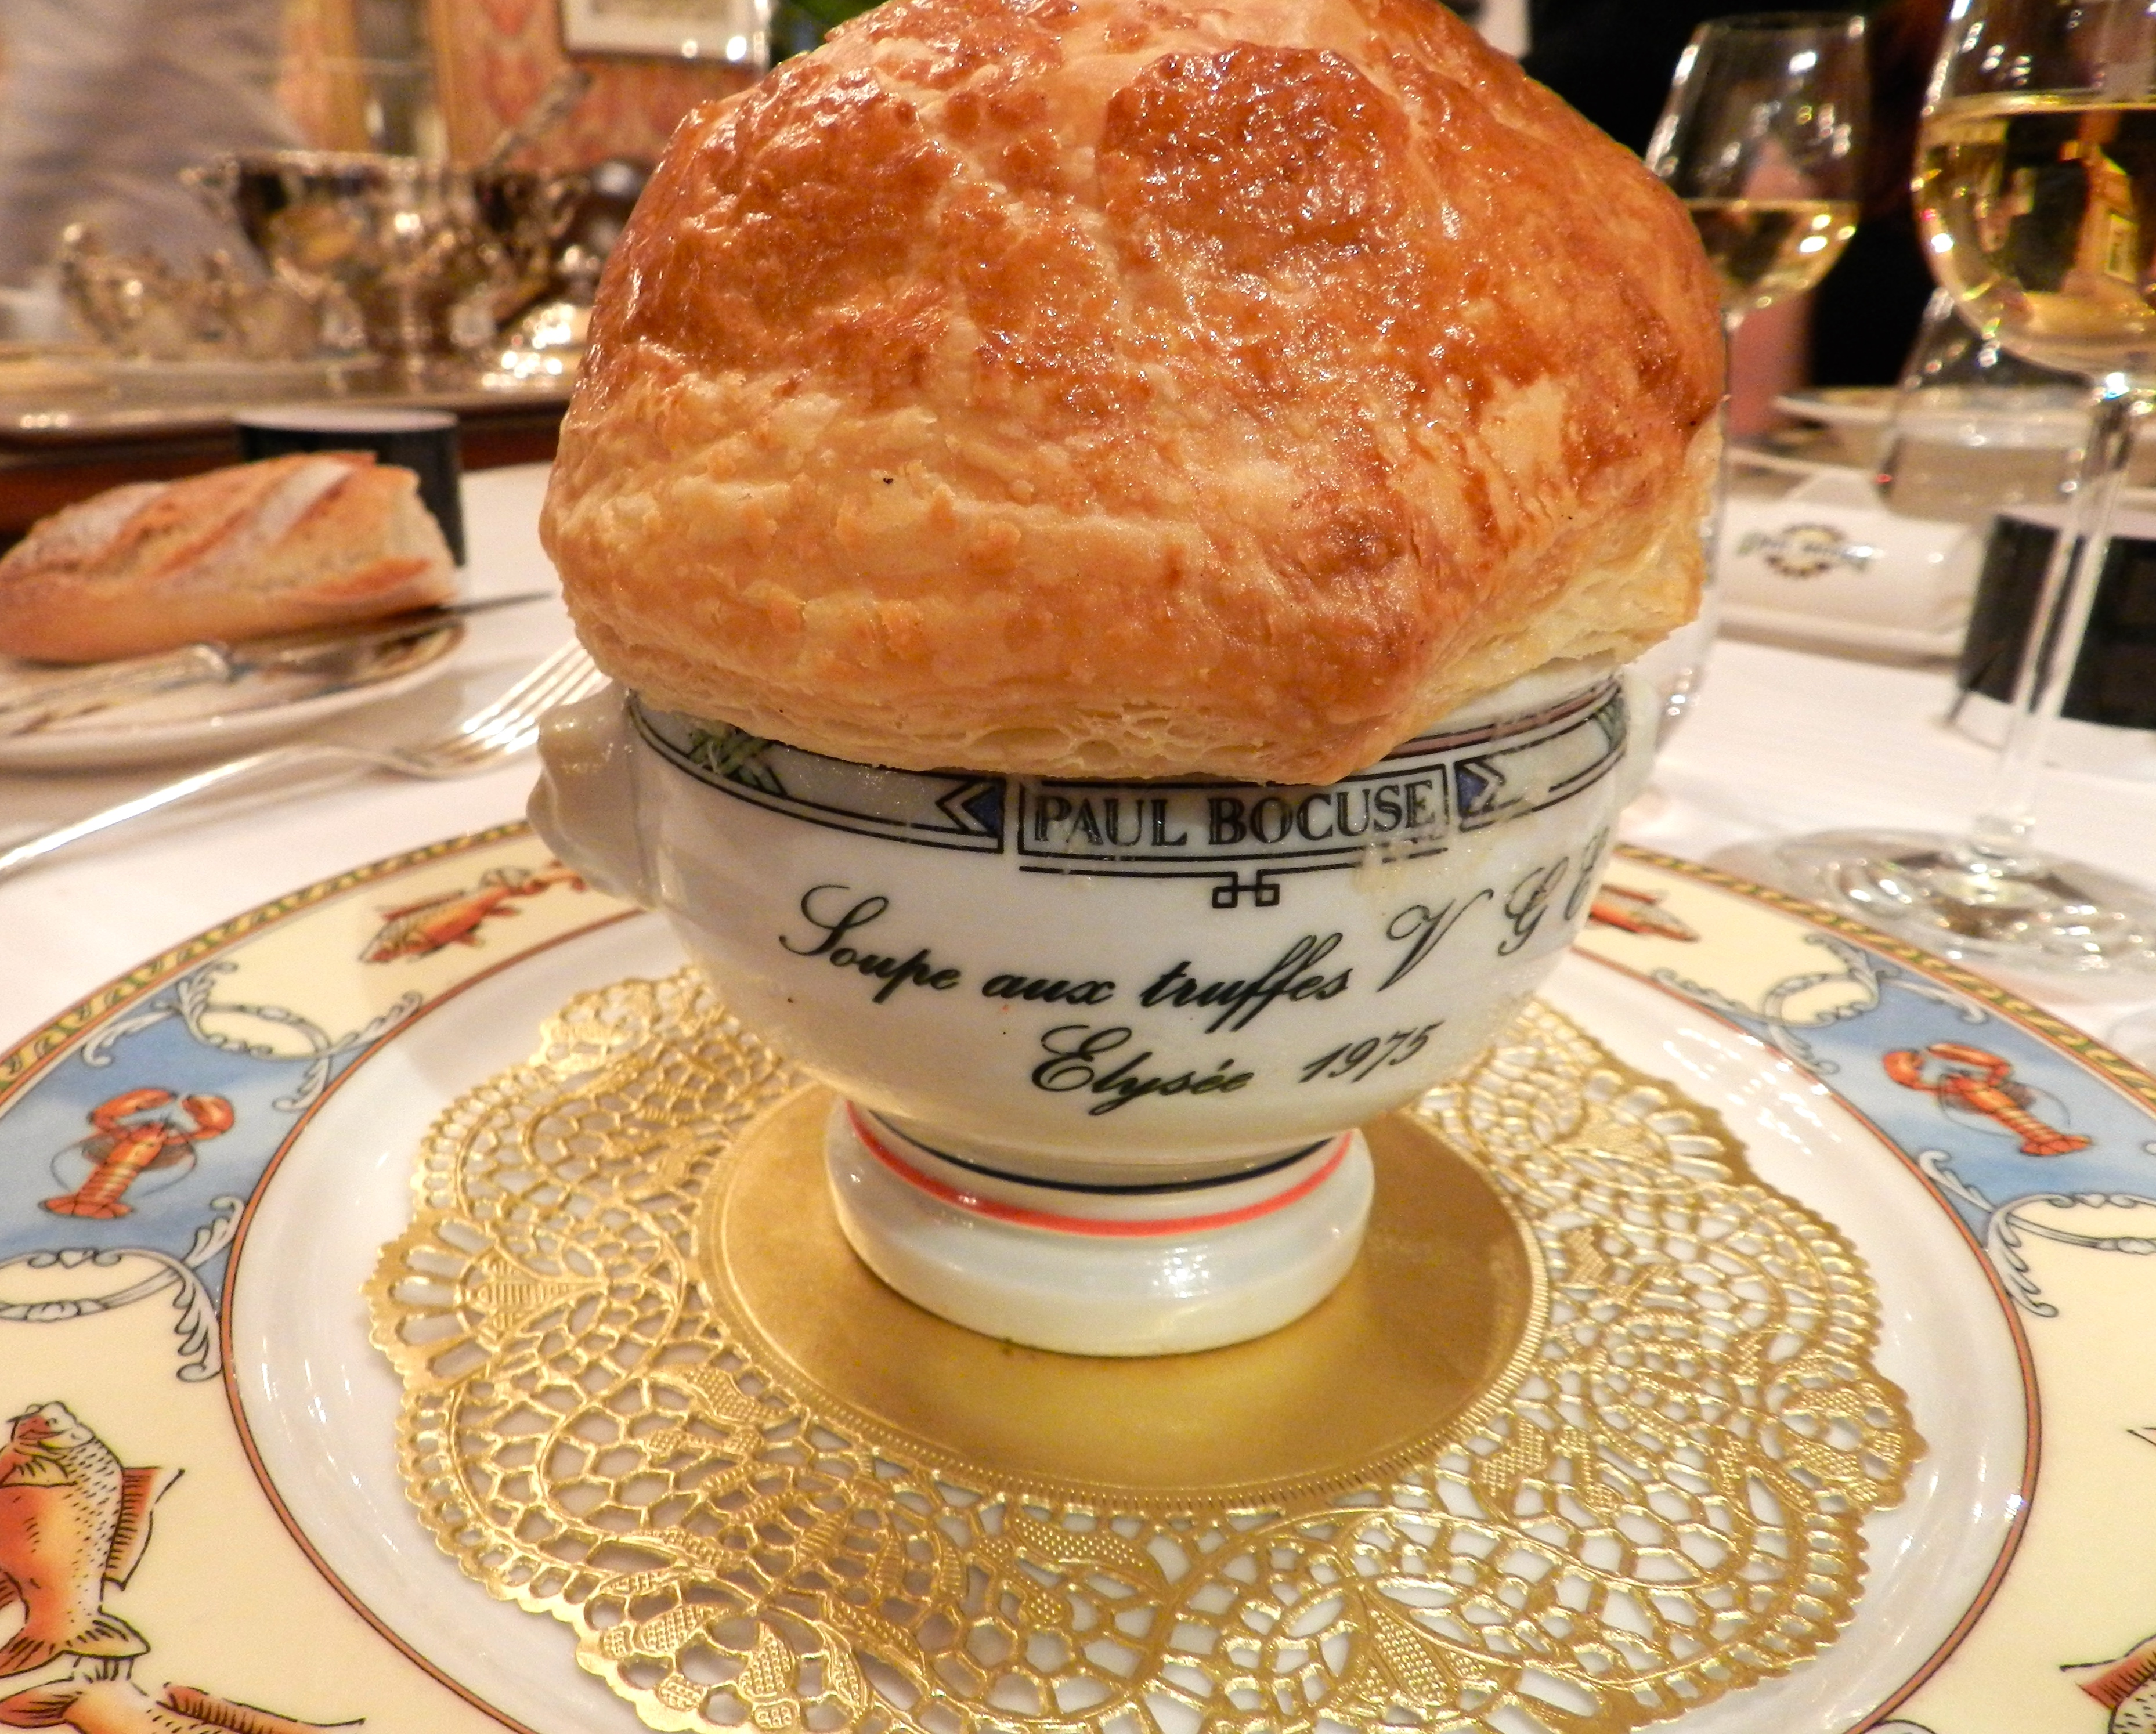 R Chicken Breast Recipes Paul Bocuse and His Tr...